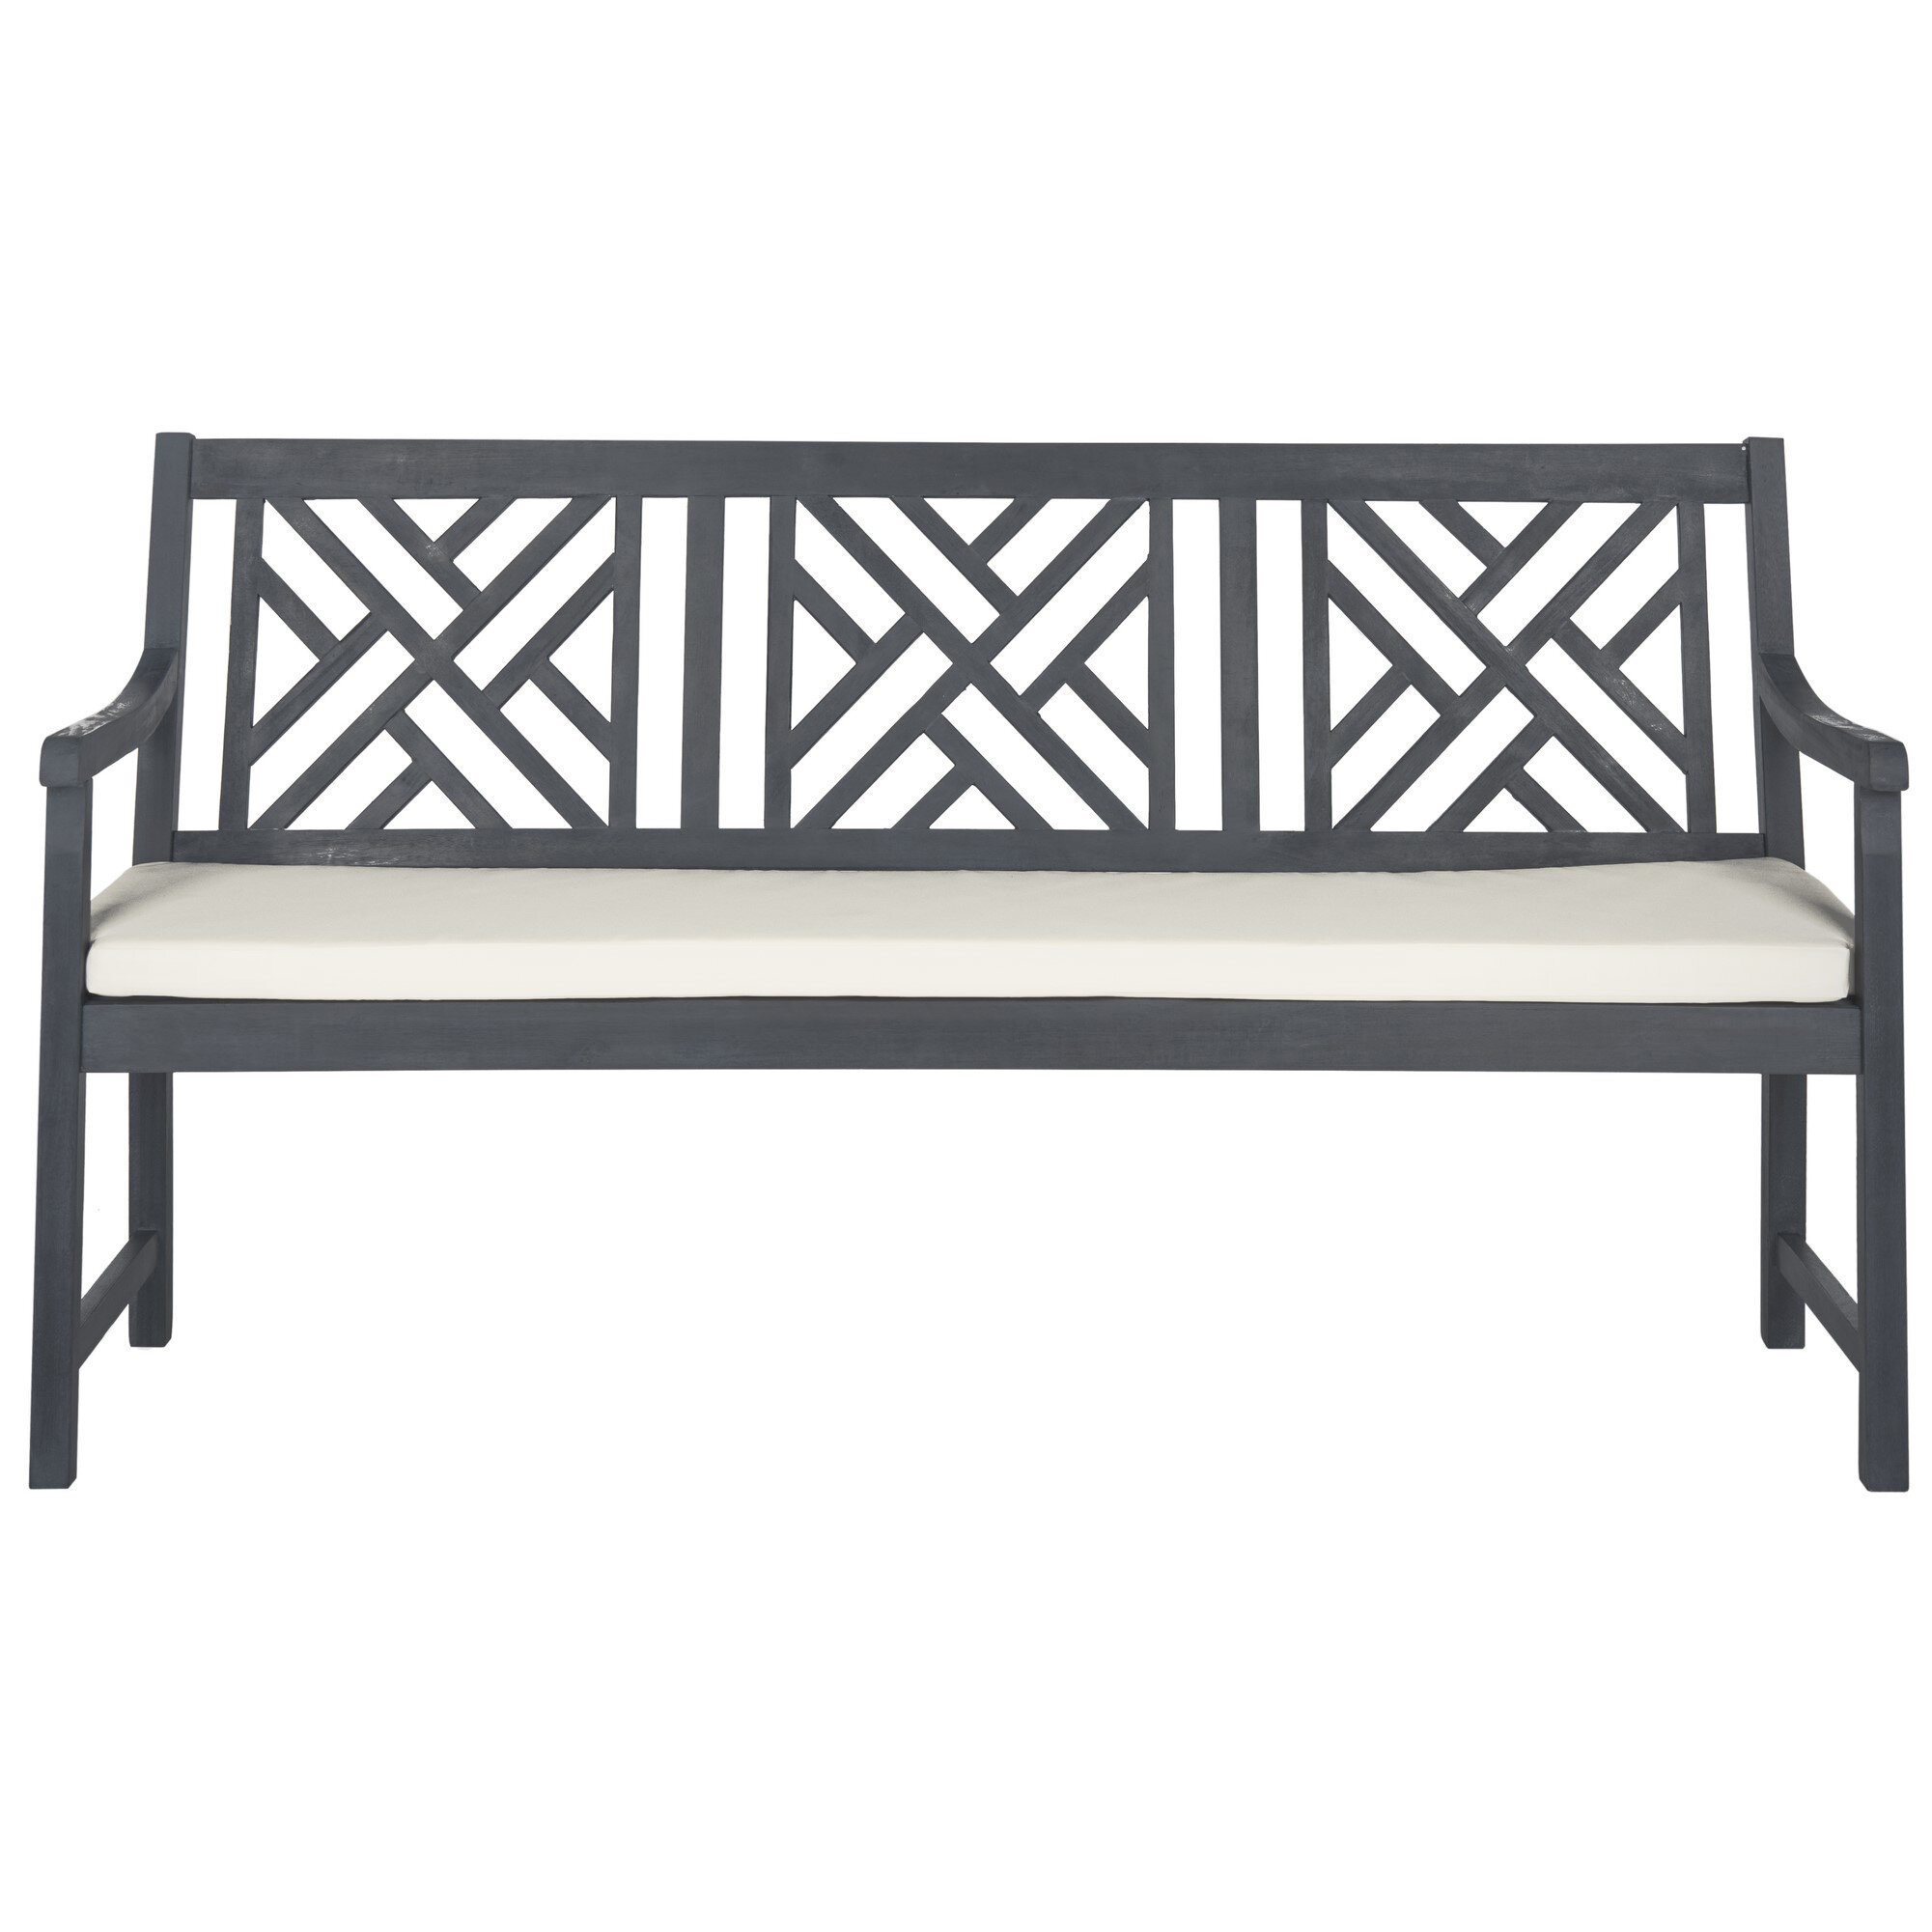 Stanwich Wooden Garden Bench Within Alvah Slatted Cast Iron And Tubular Steel Garden Benches (View 6 of 25)